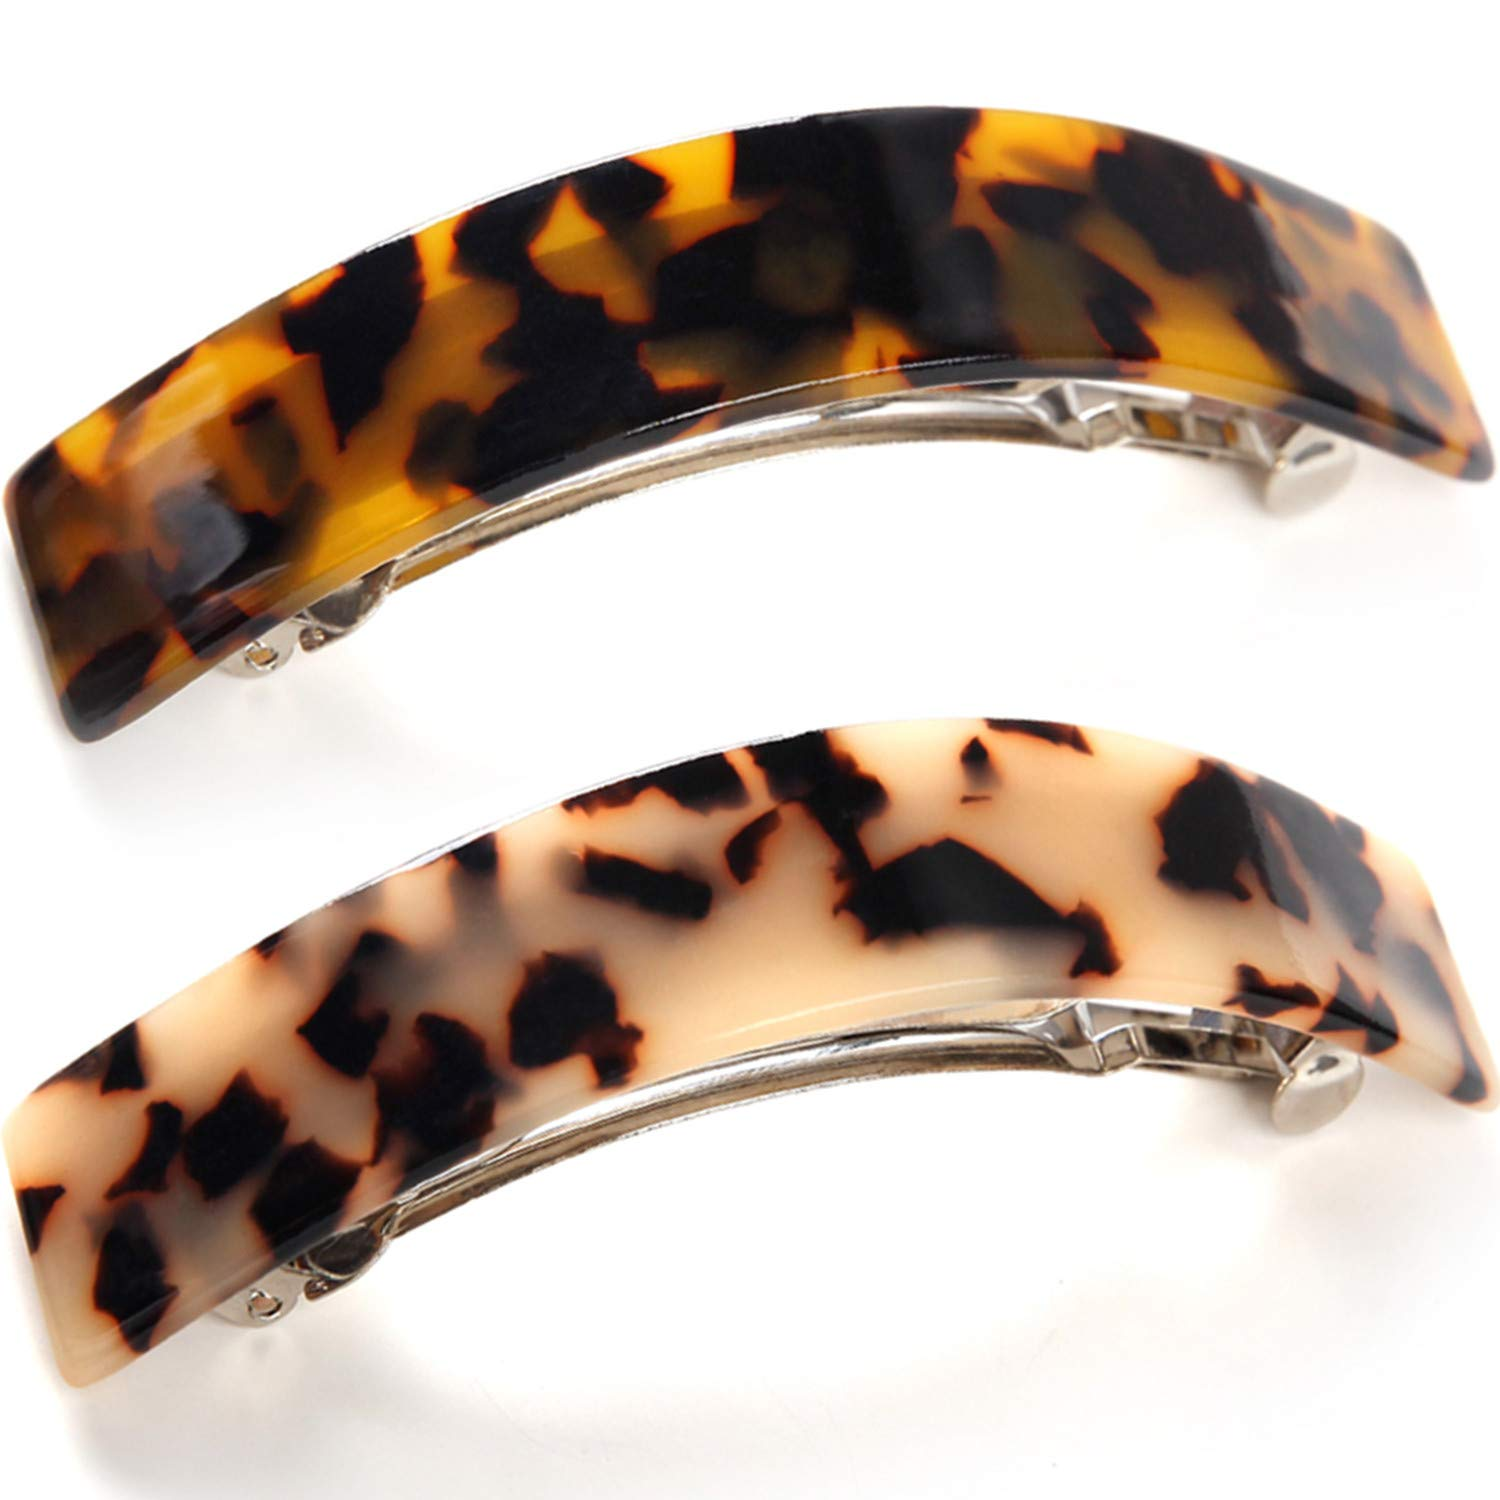 French Style Curved Rectangle Volume Barrette Tortoise Shell Hair Clips Barrettes Automatic Clasp For Thick Hair, 2 Pack : Beauty